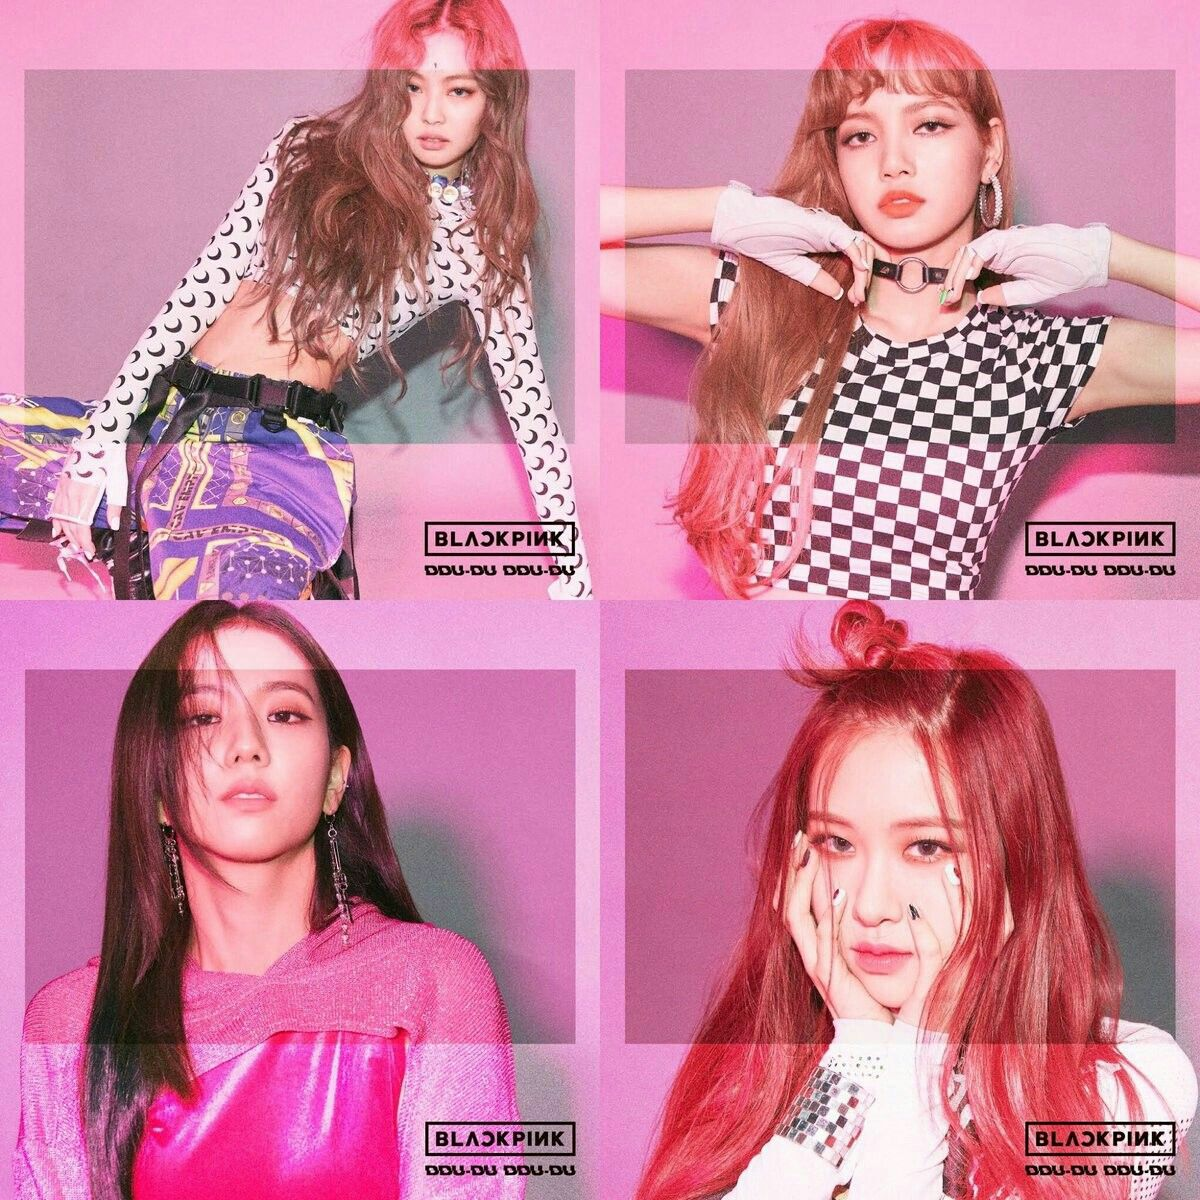 Blackpink Reactions/Imagines!~ [CONTINUED] - BLACKPINK WYR 💕 - Wattpad